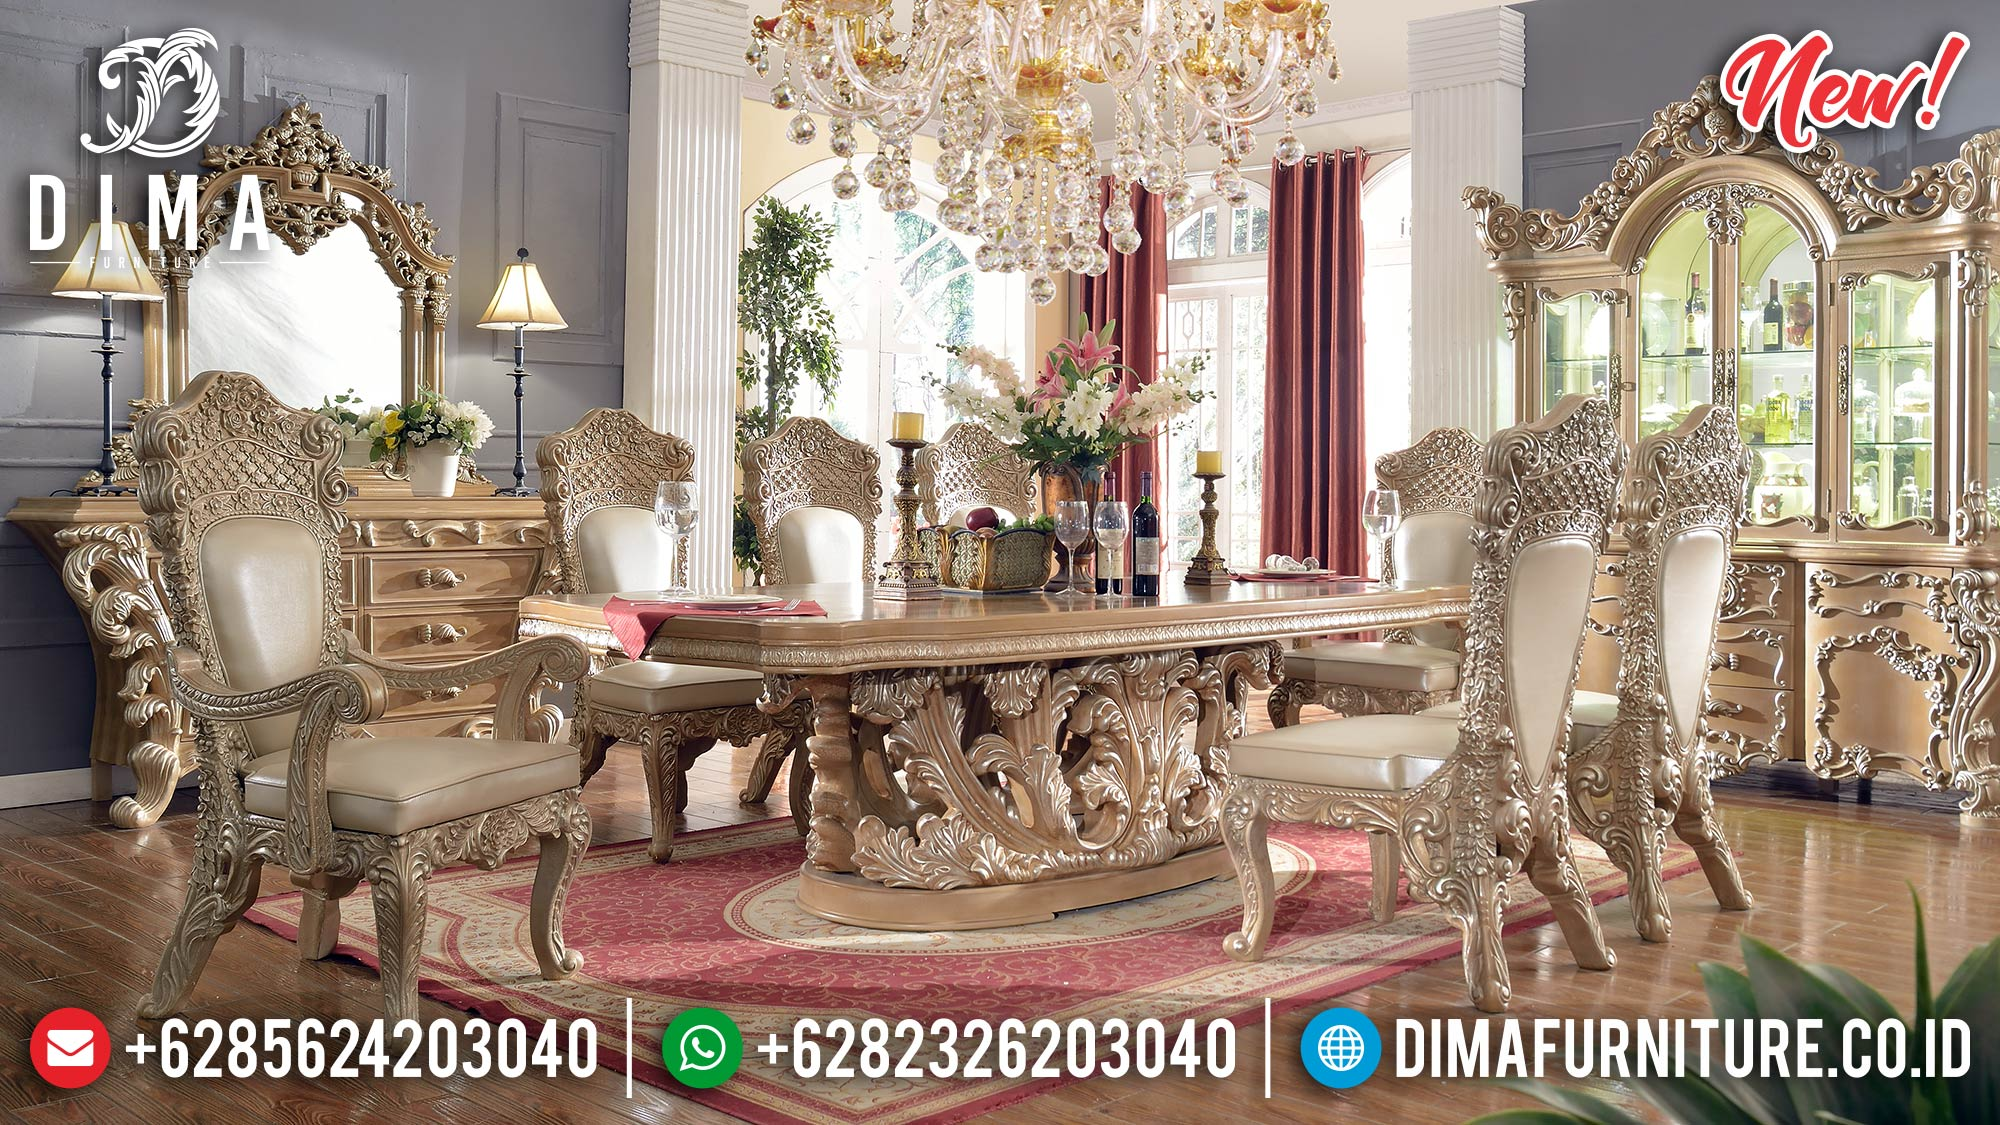 Jual Meja Makan Ukiran Mewah Furniture Luxury Jepara New Normal Release TTJ-0966